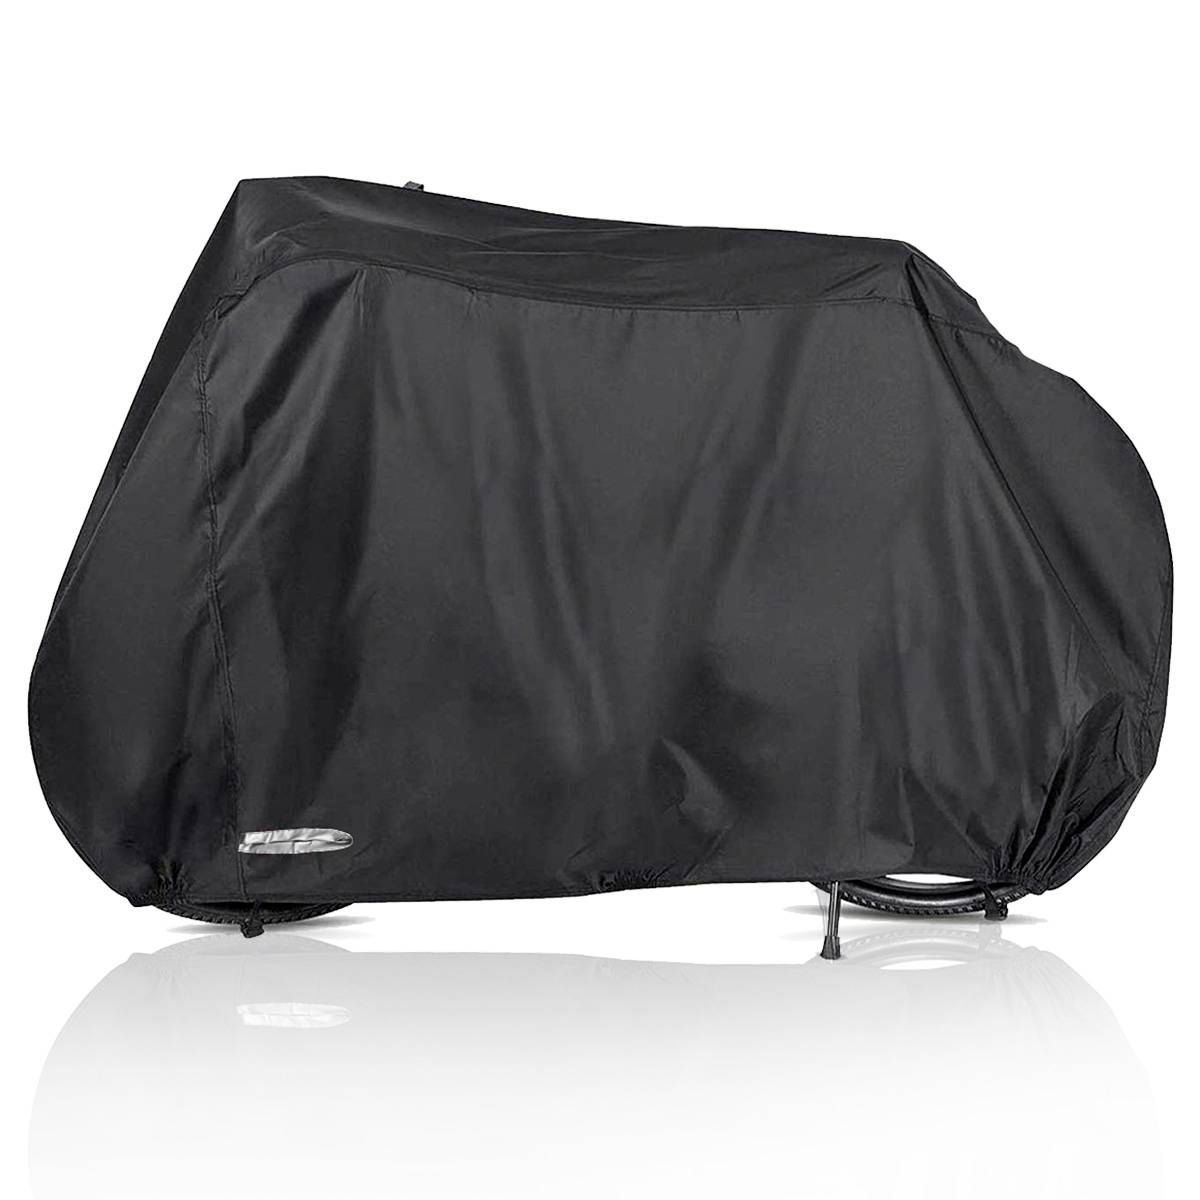 "Audew 78.7"" x 27.6"" x 43.3"" Bike Outdoor Waterproof Bicycle Cover with Lock Holes"